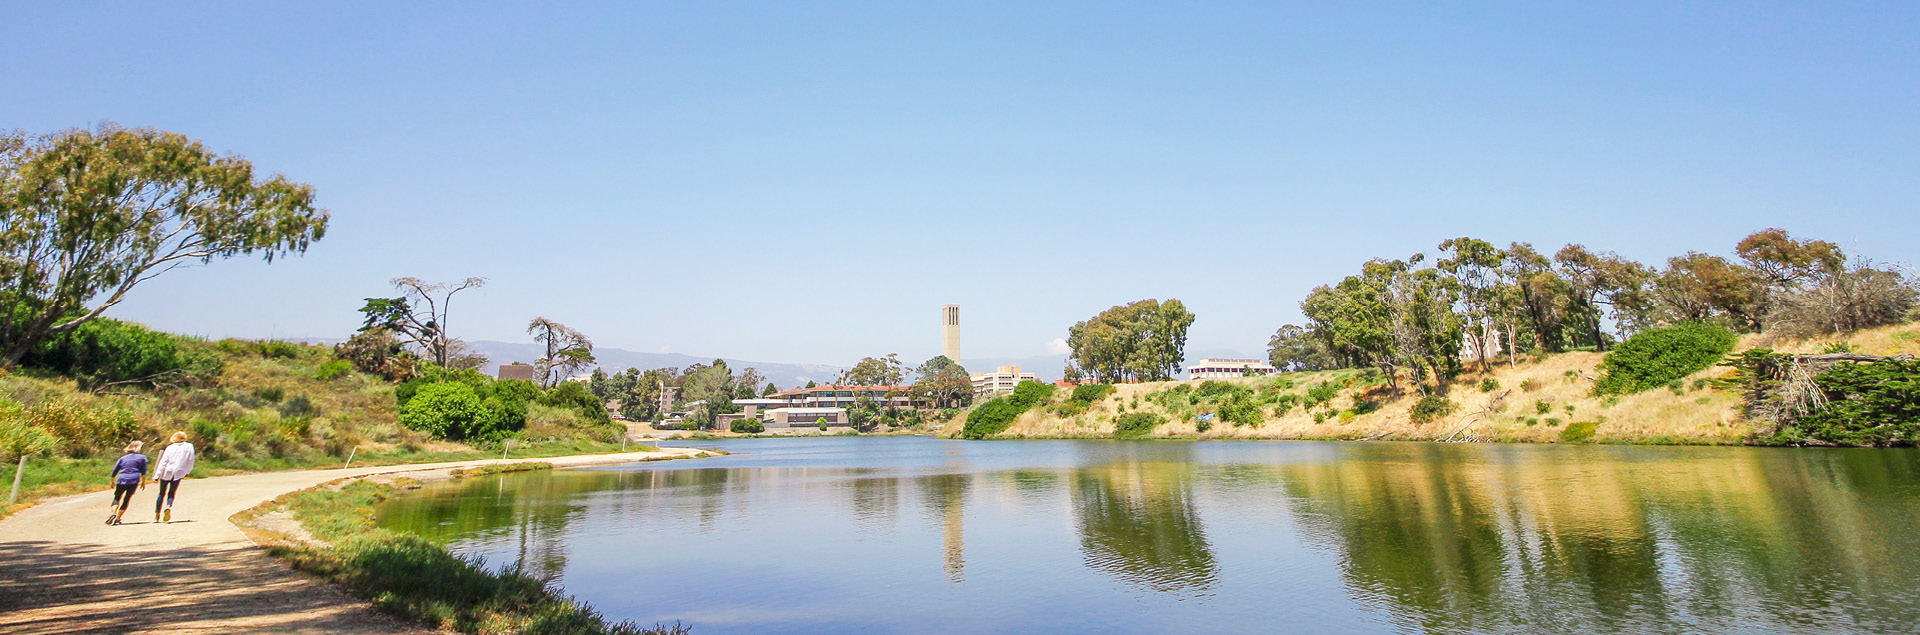 Scenic view of the lagoon with Storke Tower in the background